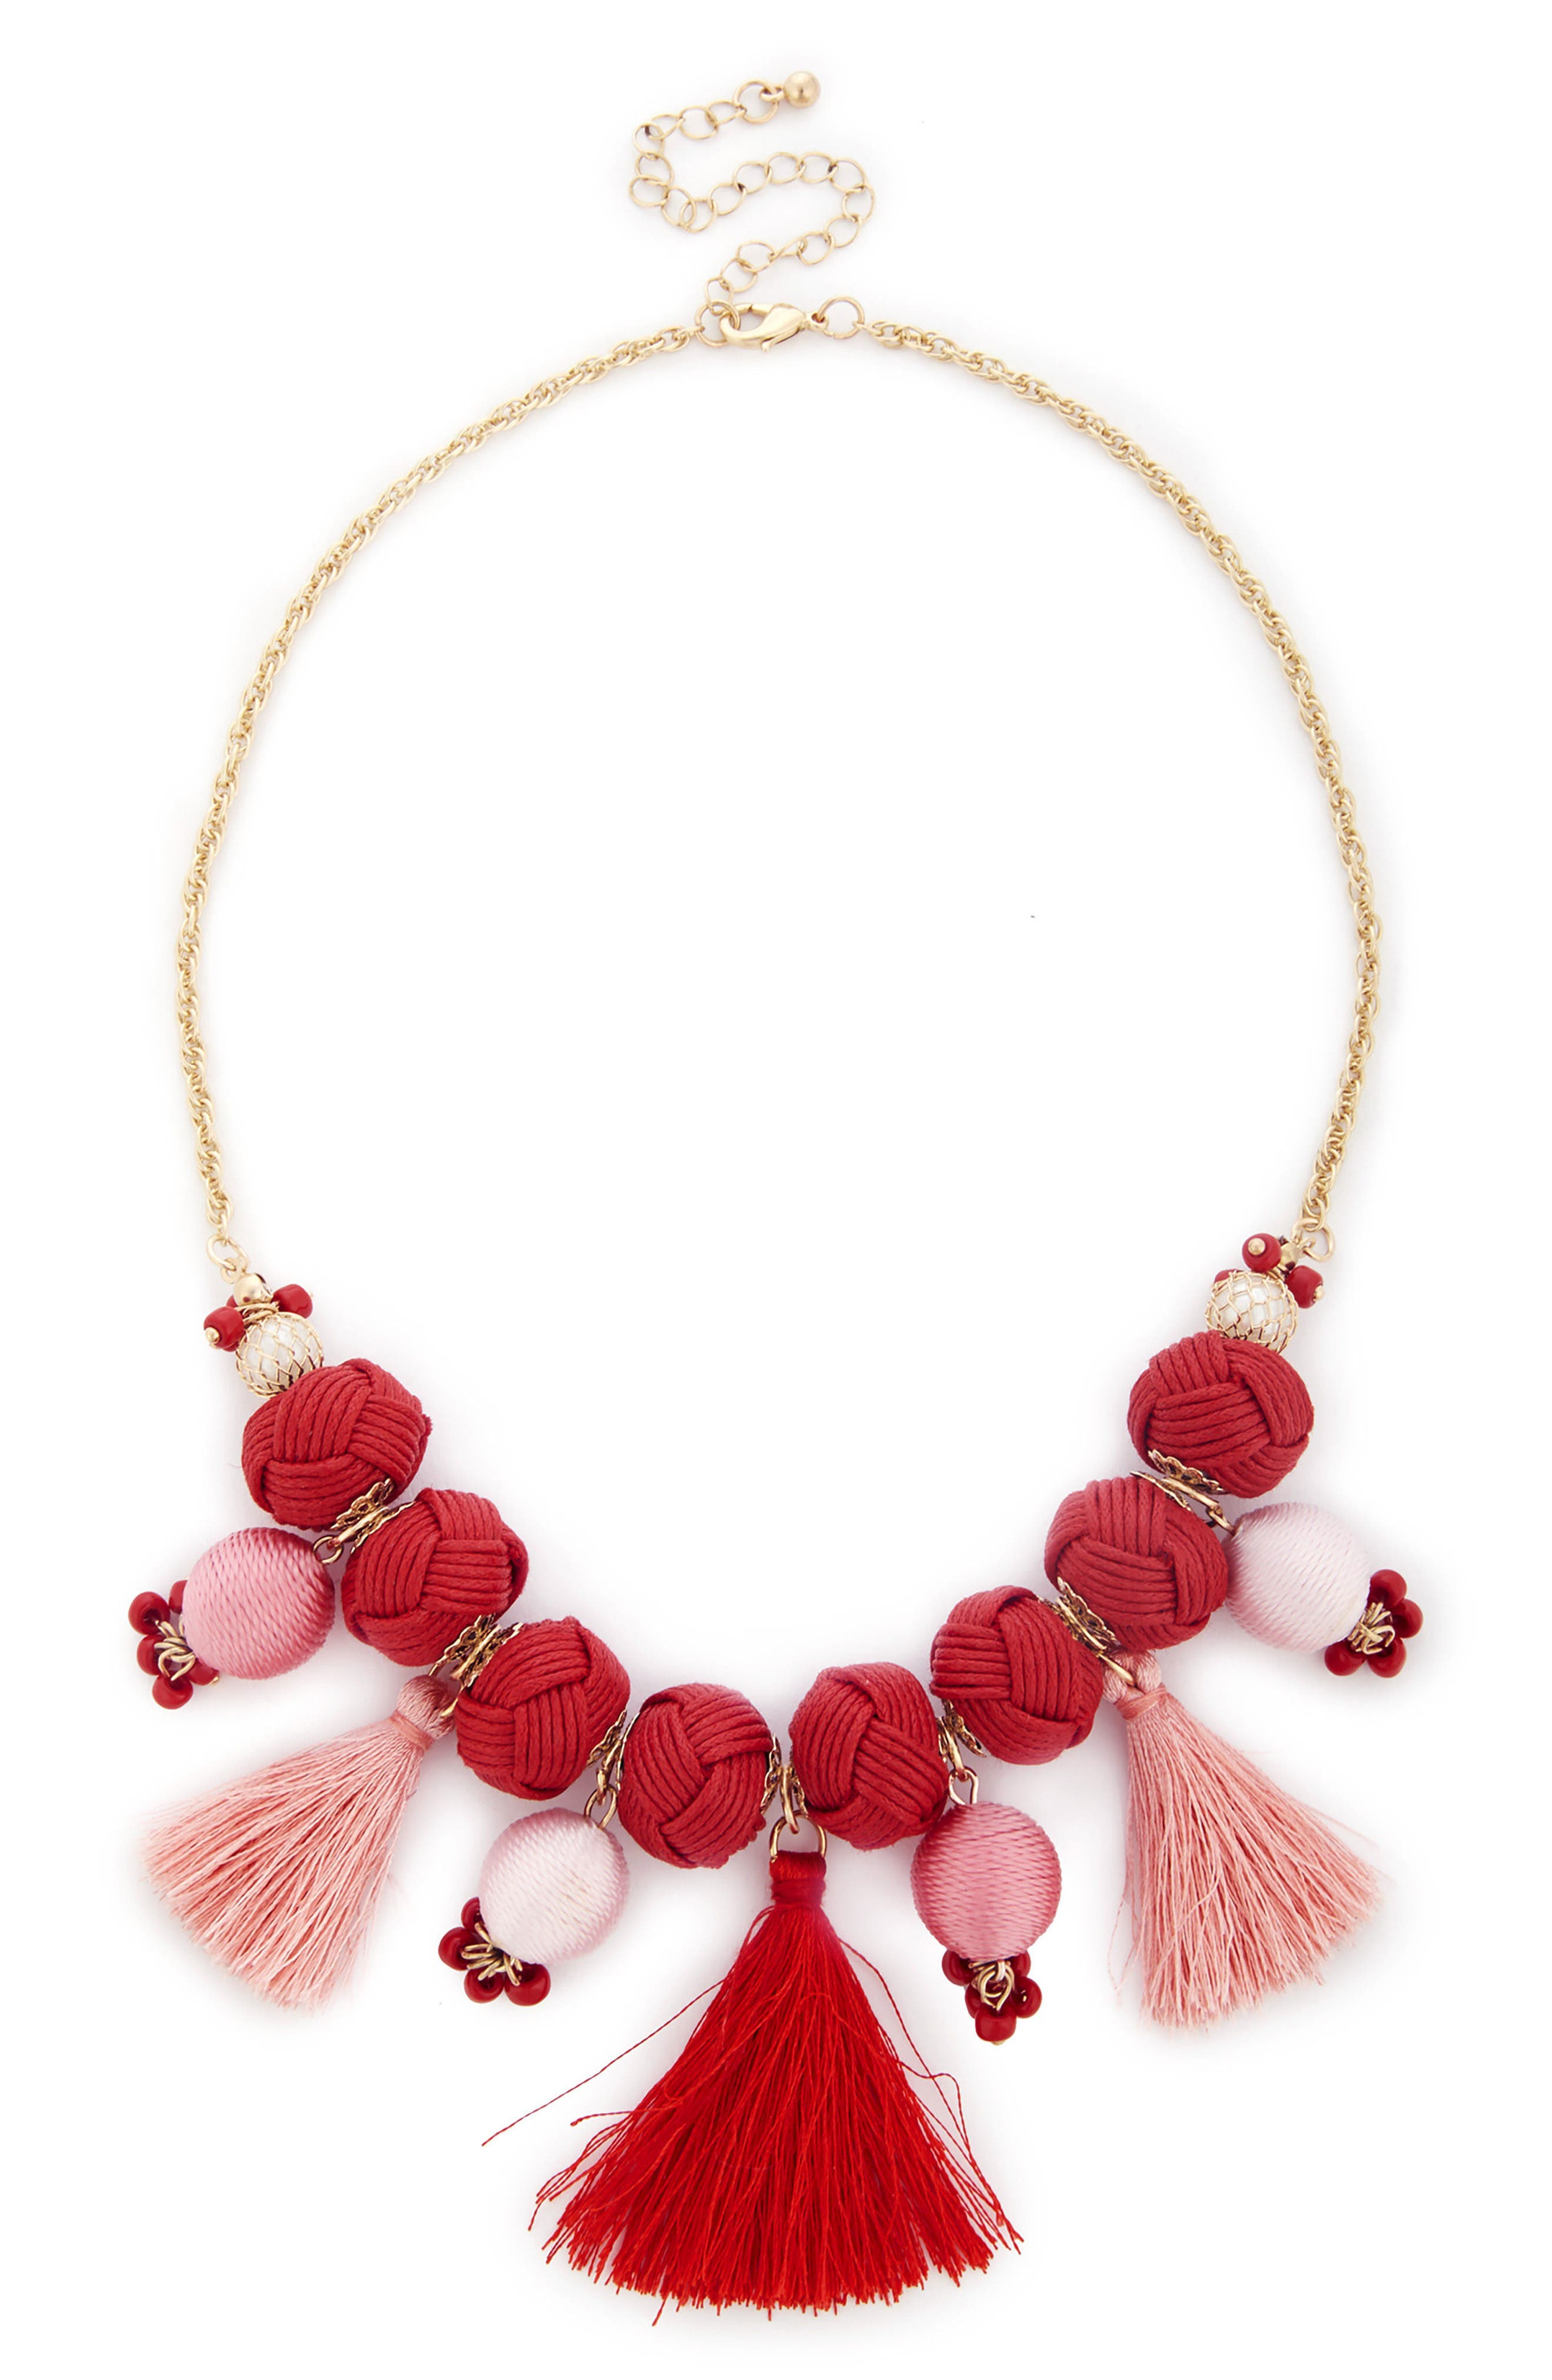 SOLE SOCIETY Meeko Tassel Statement Necklace, Main, color, 660